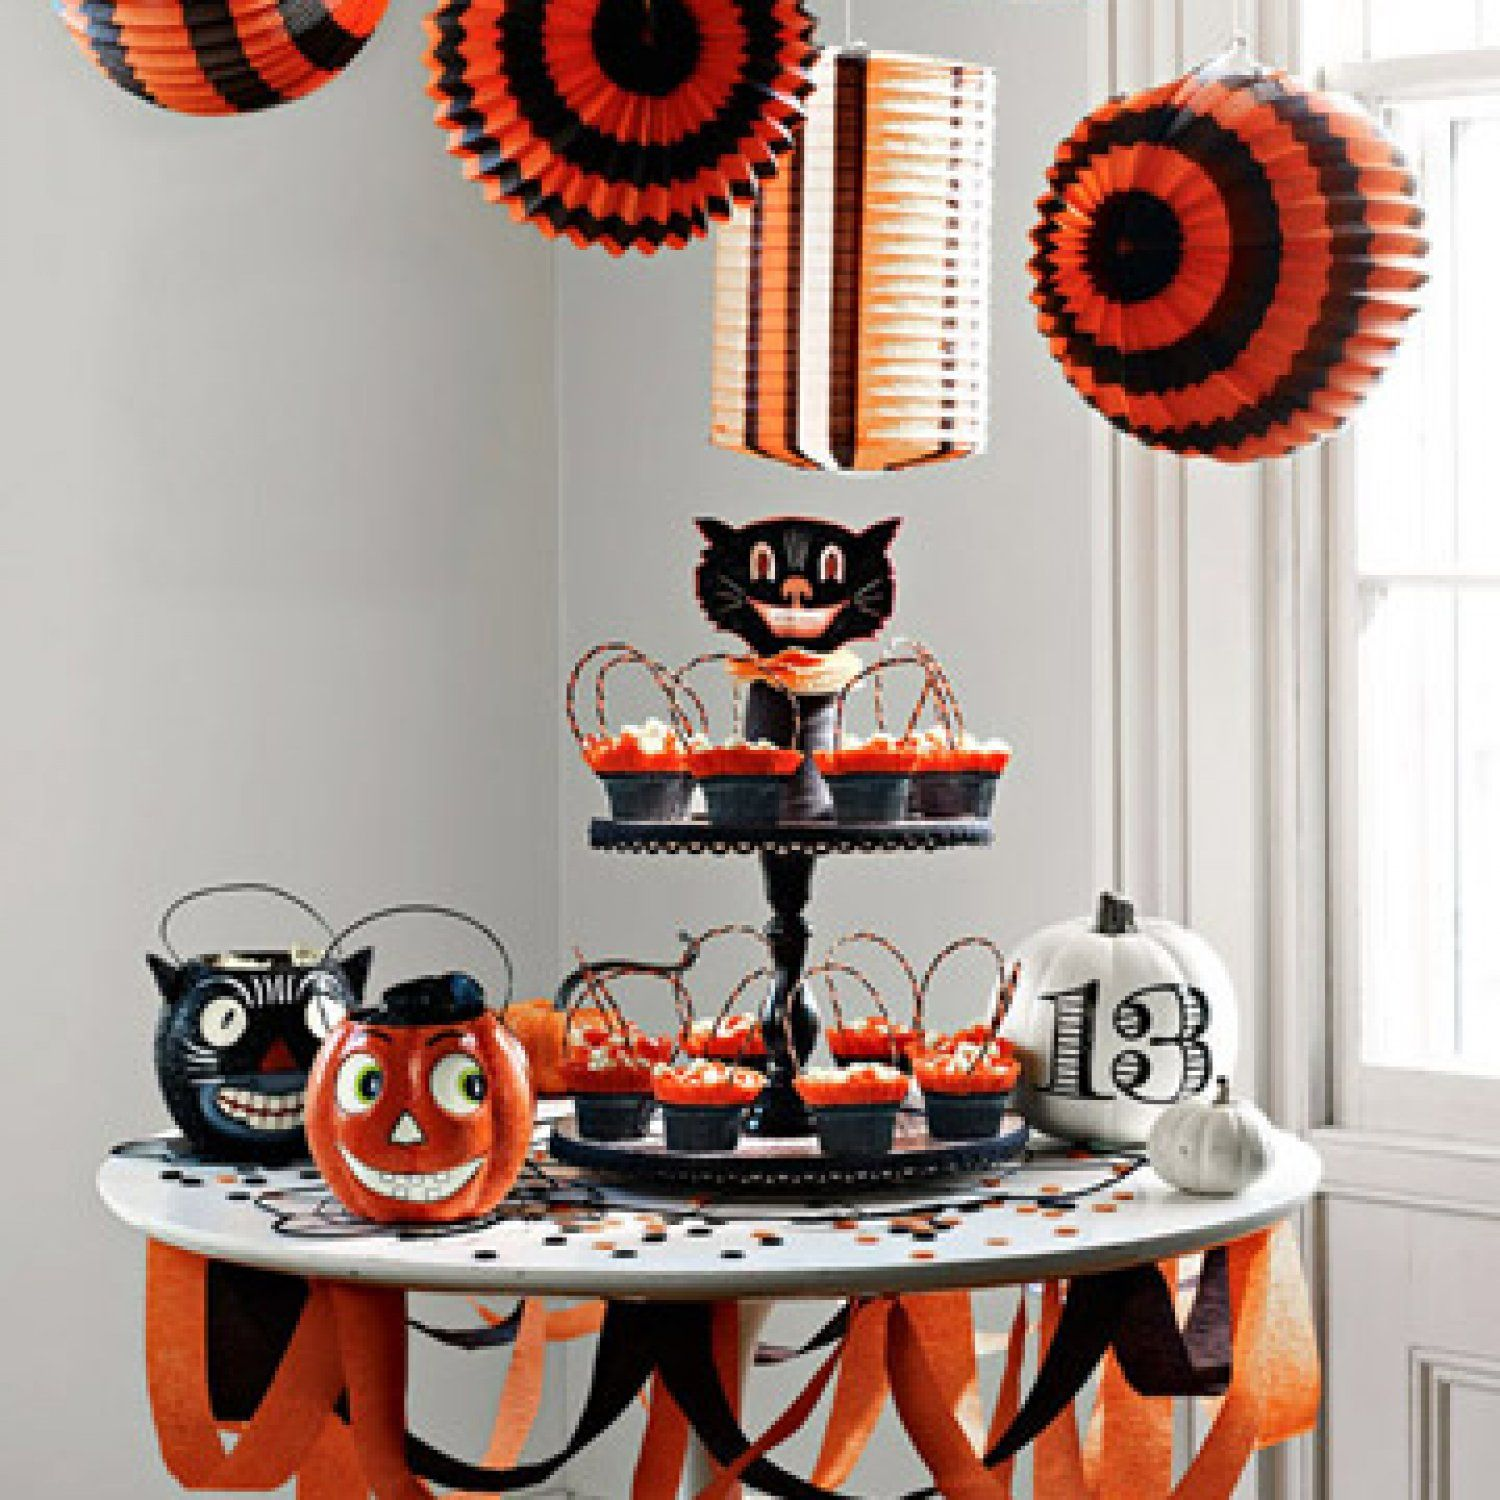 Black cats, lucky numbers and delicious sweets set a festive scene - Diy Indoor Halloween Decorations